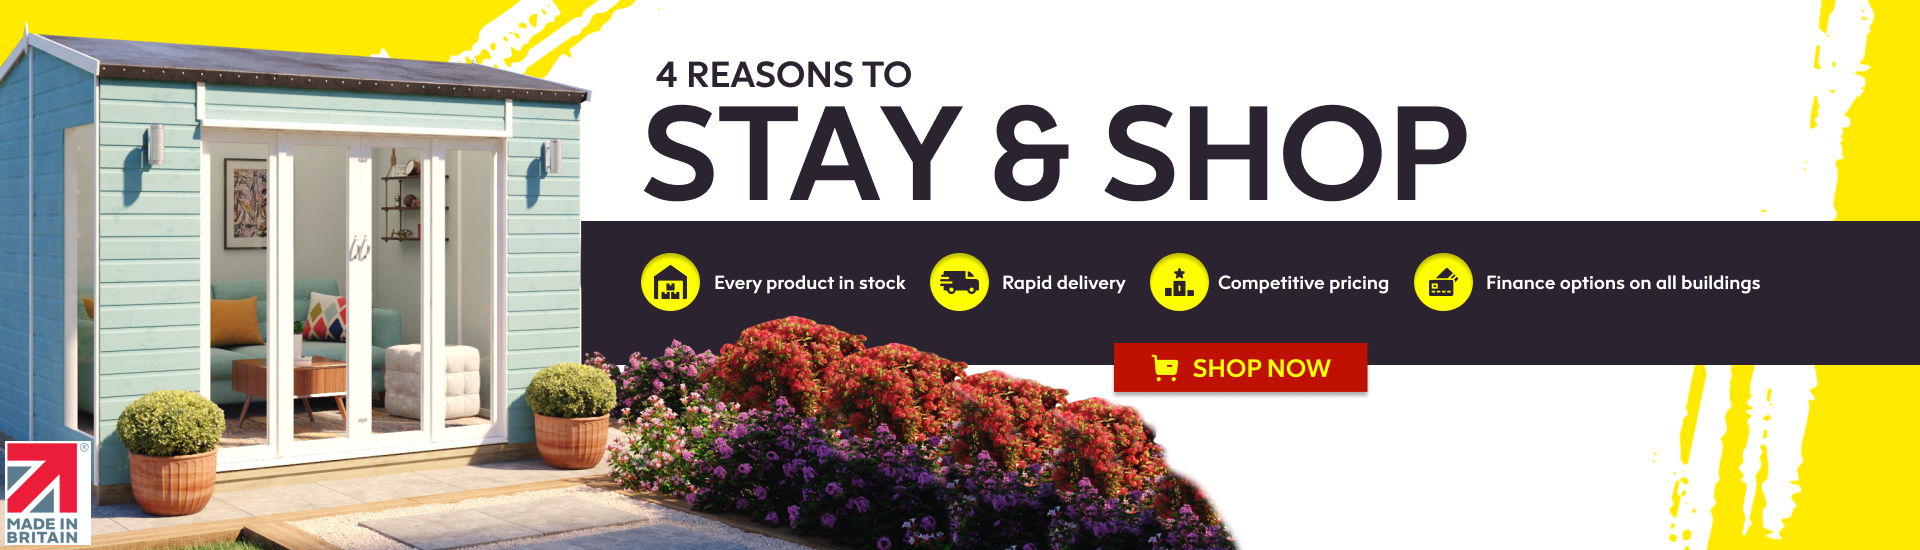 4 reason to stay and shop